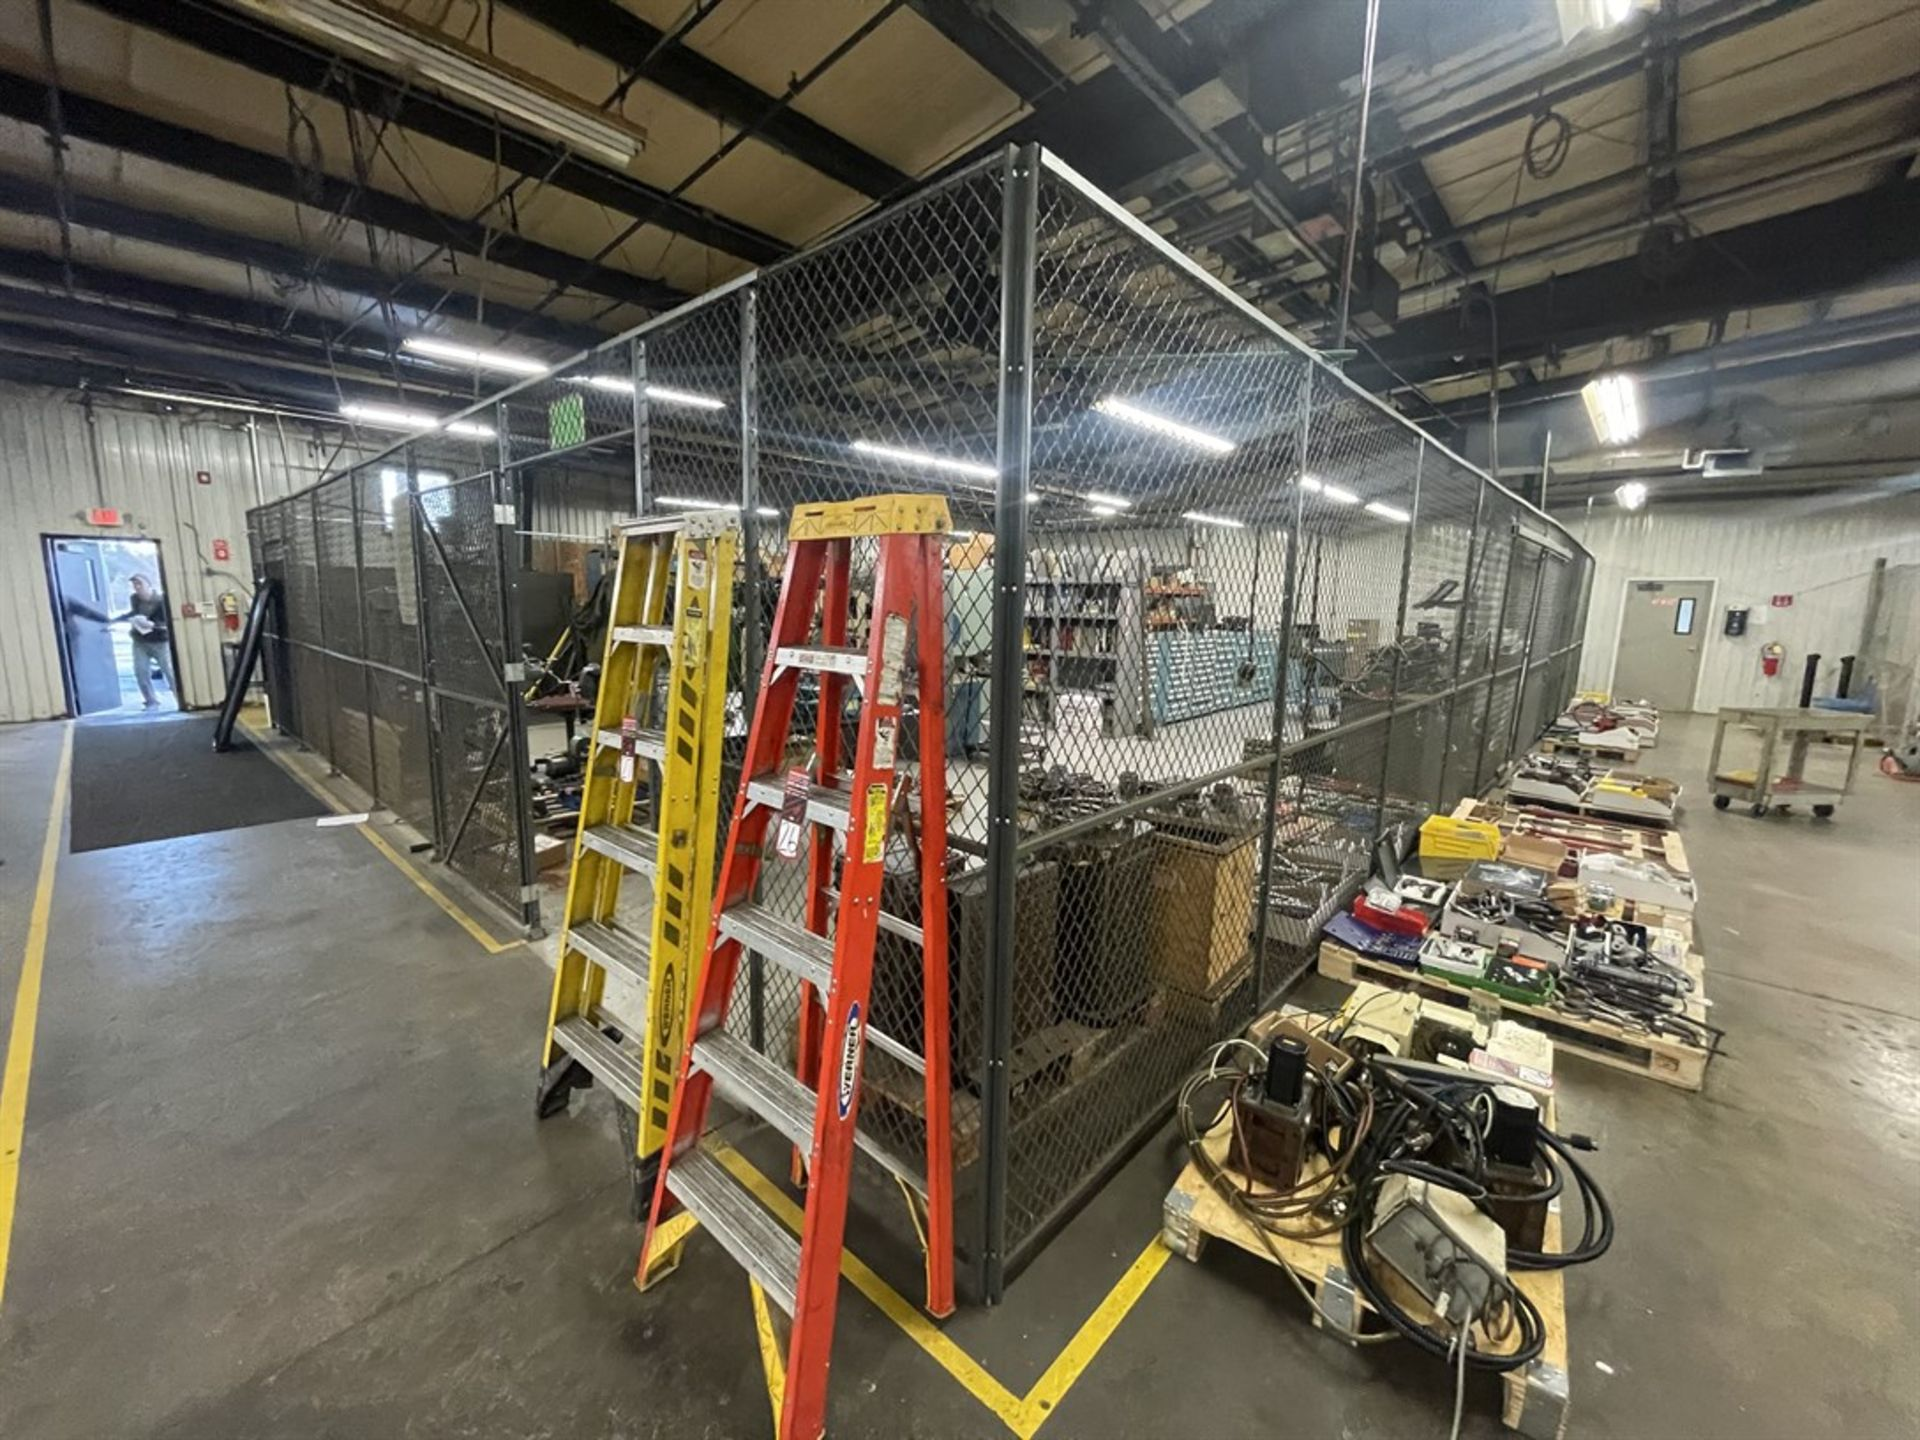 FOLDING GUARD WOV-N-WIRE Crib Fencing, Approx. 125' Total Length Sliding Door and Hinge Door - Image 3 of 4